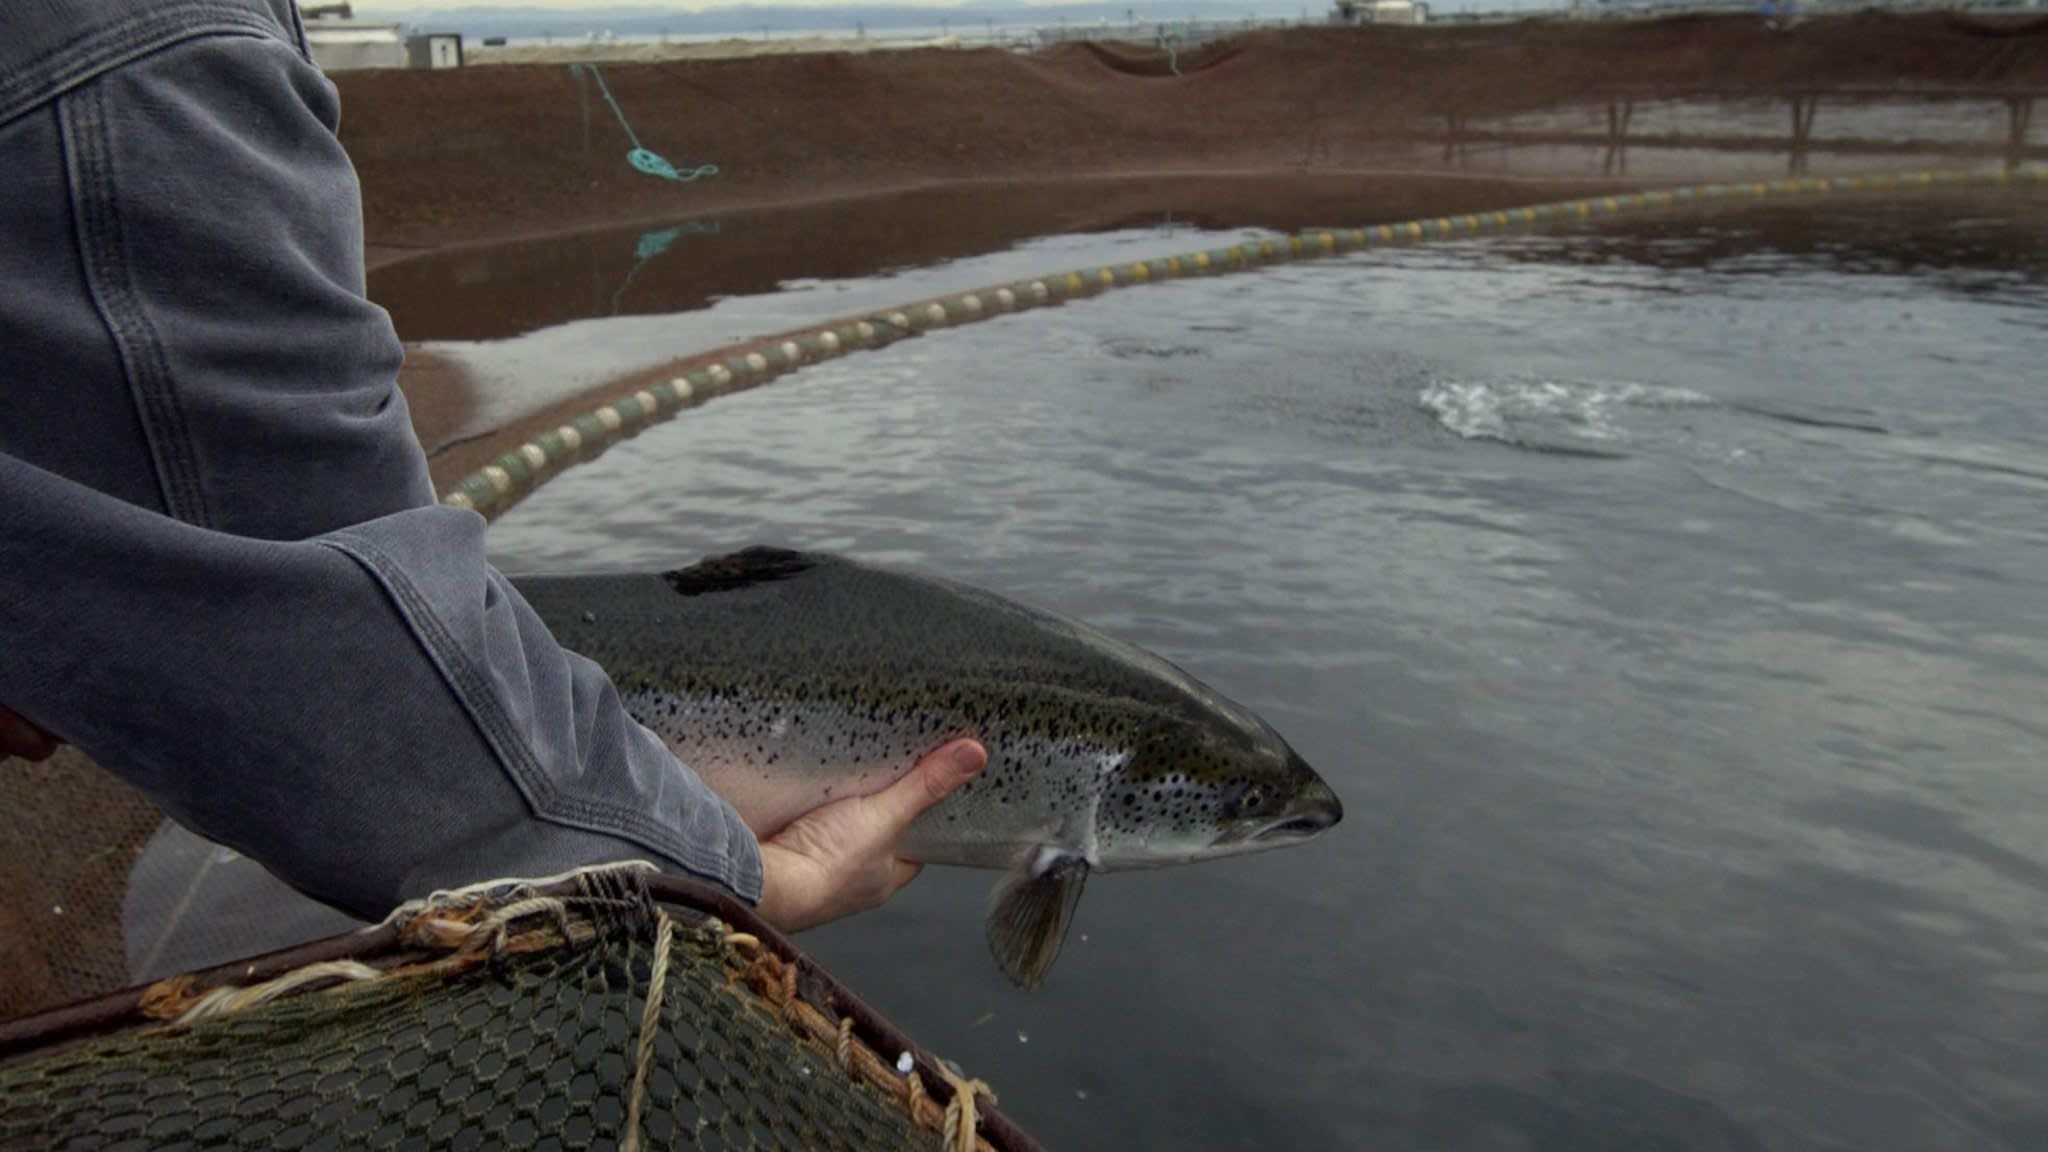 Salmon leaps past shrimp in global fish market   Financial Times